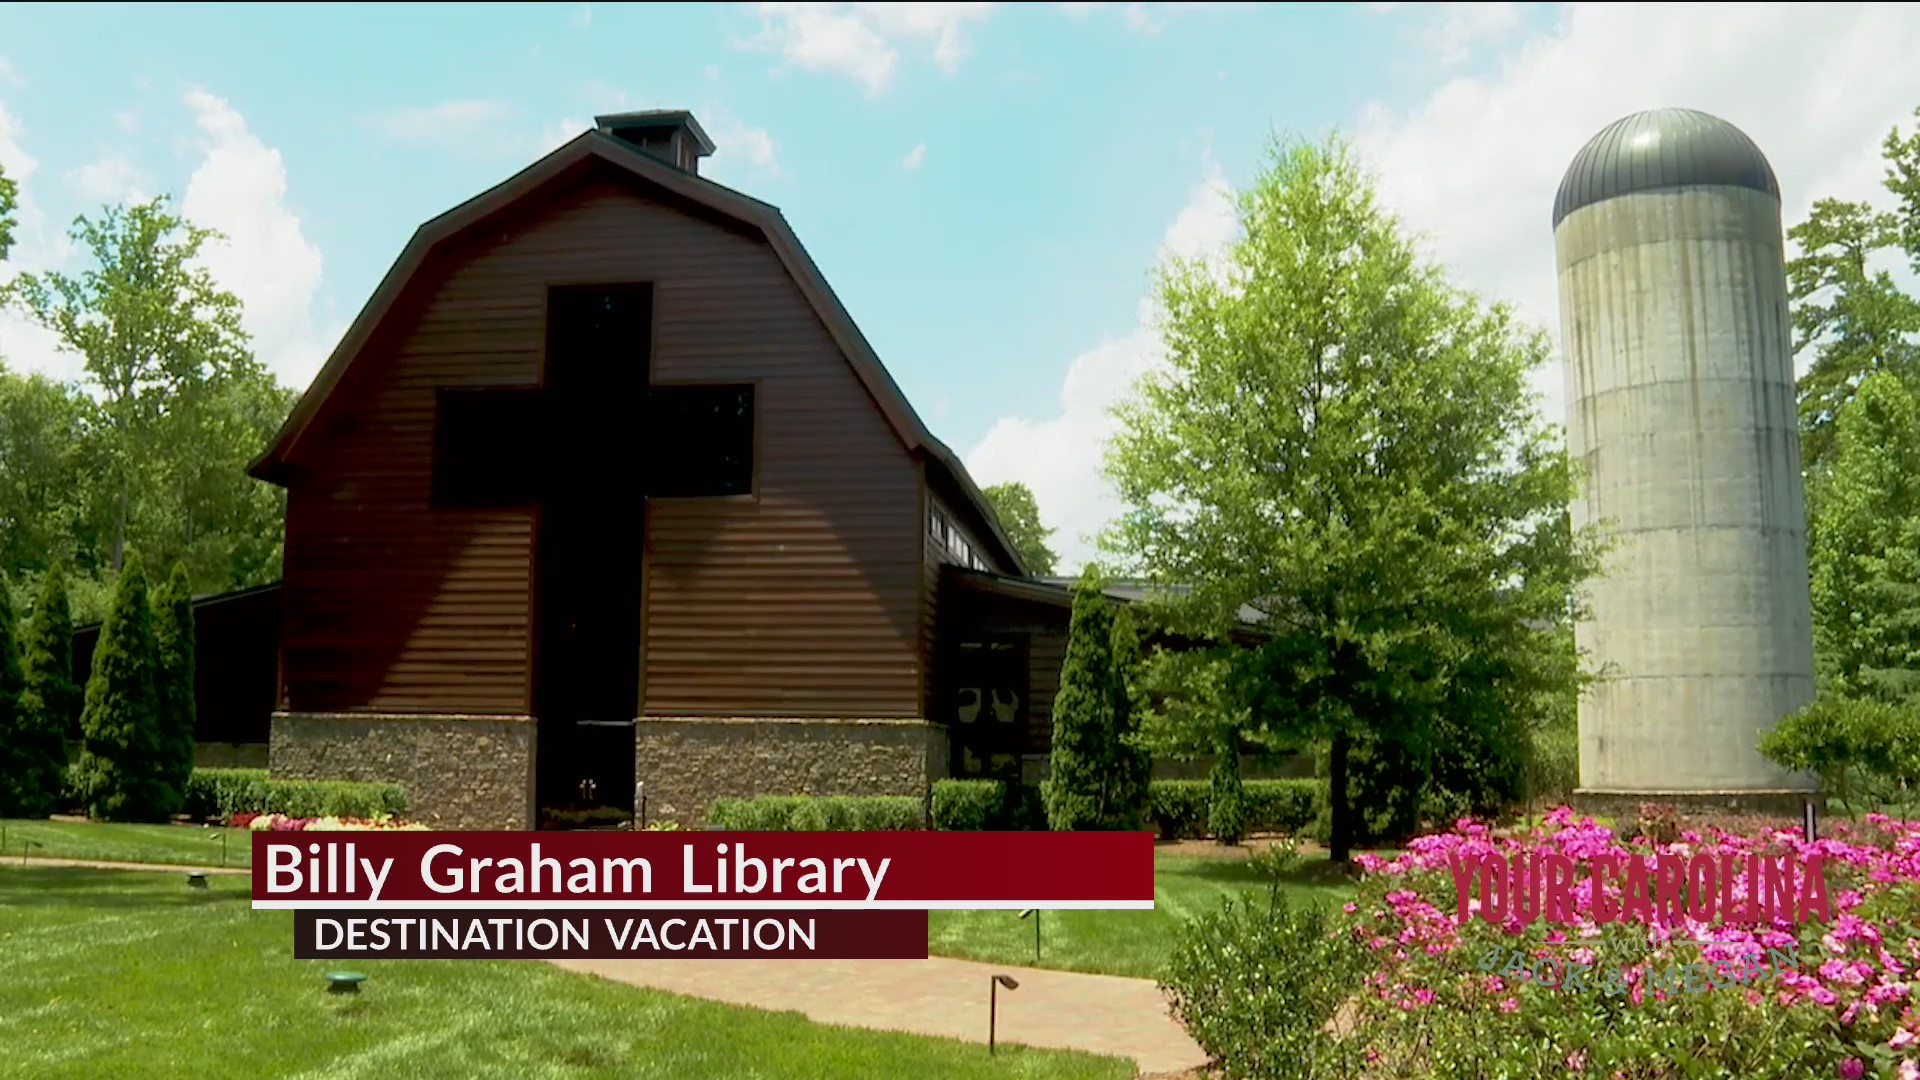 Destination Vacation - Billy Graham Library